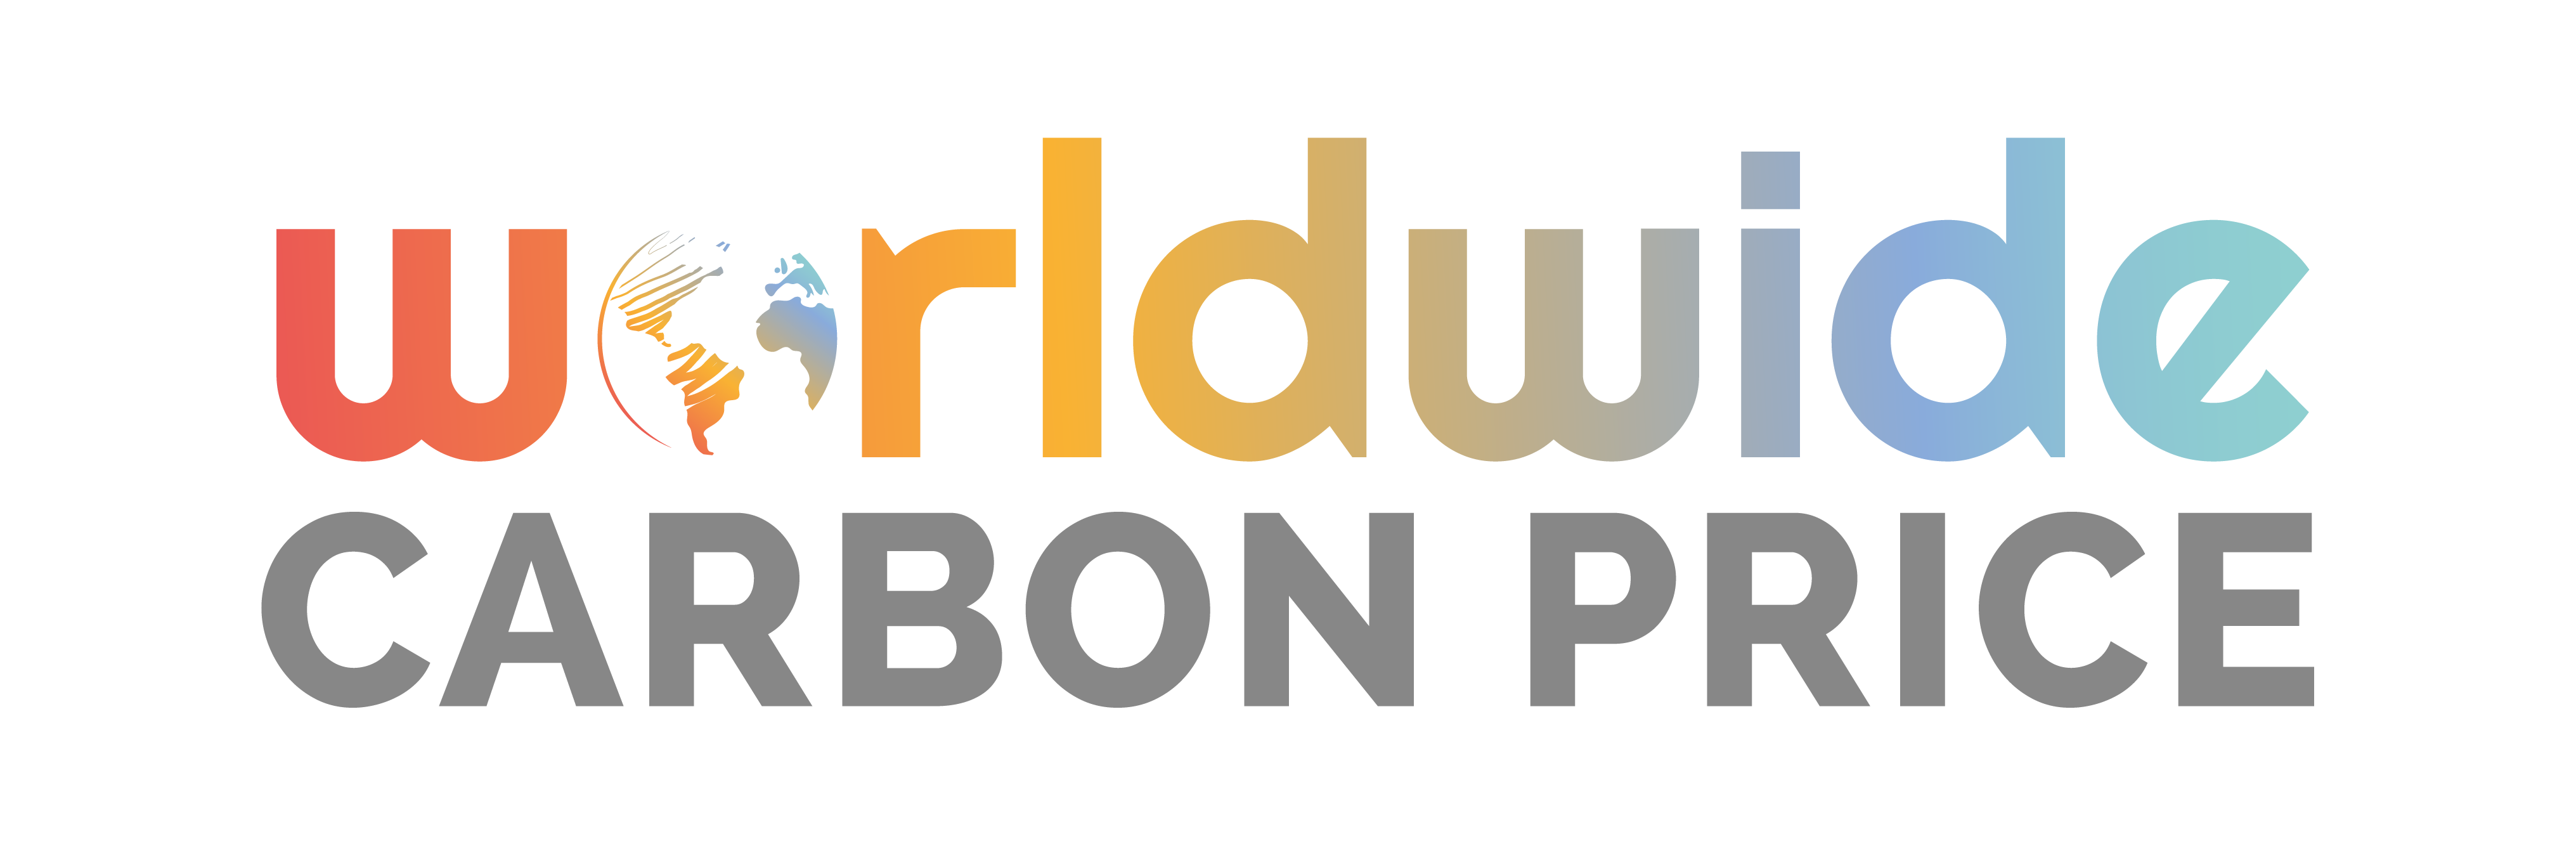 Worldwide Carbon Price